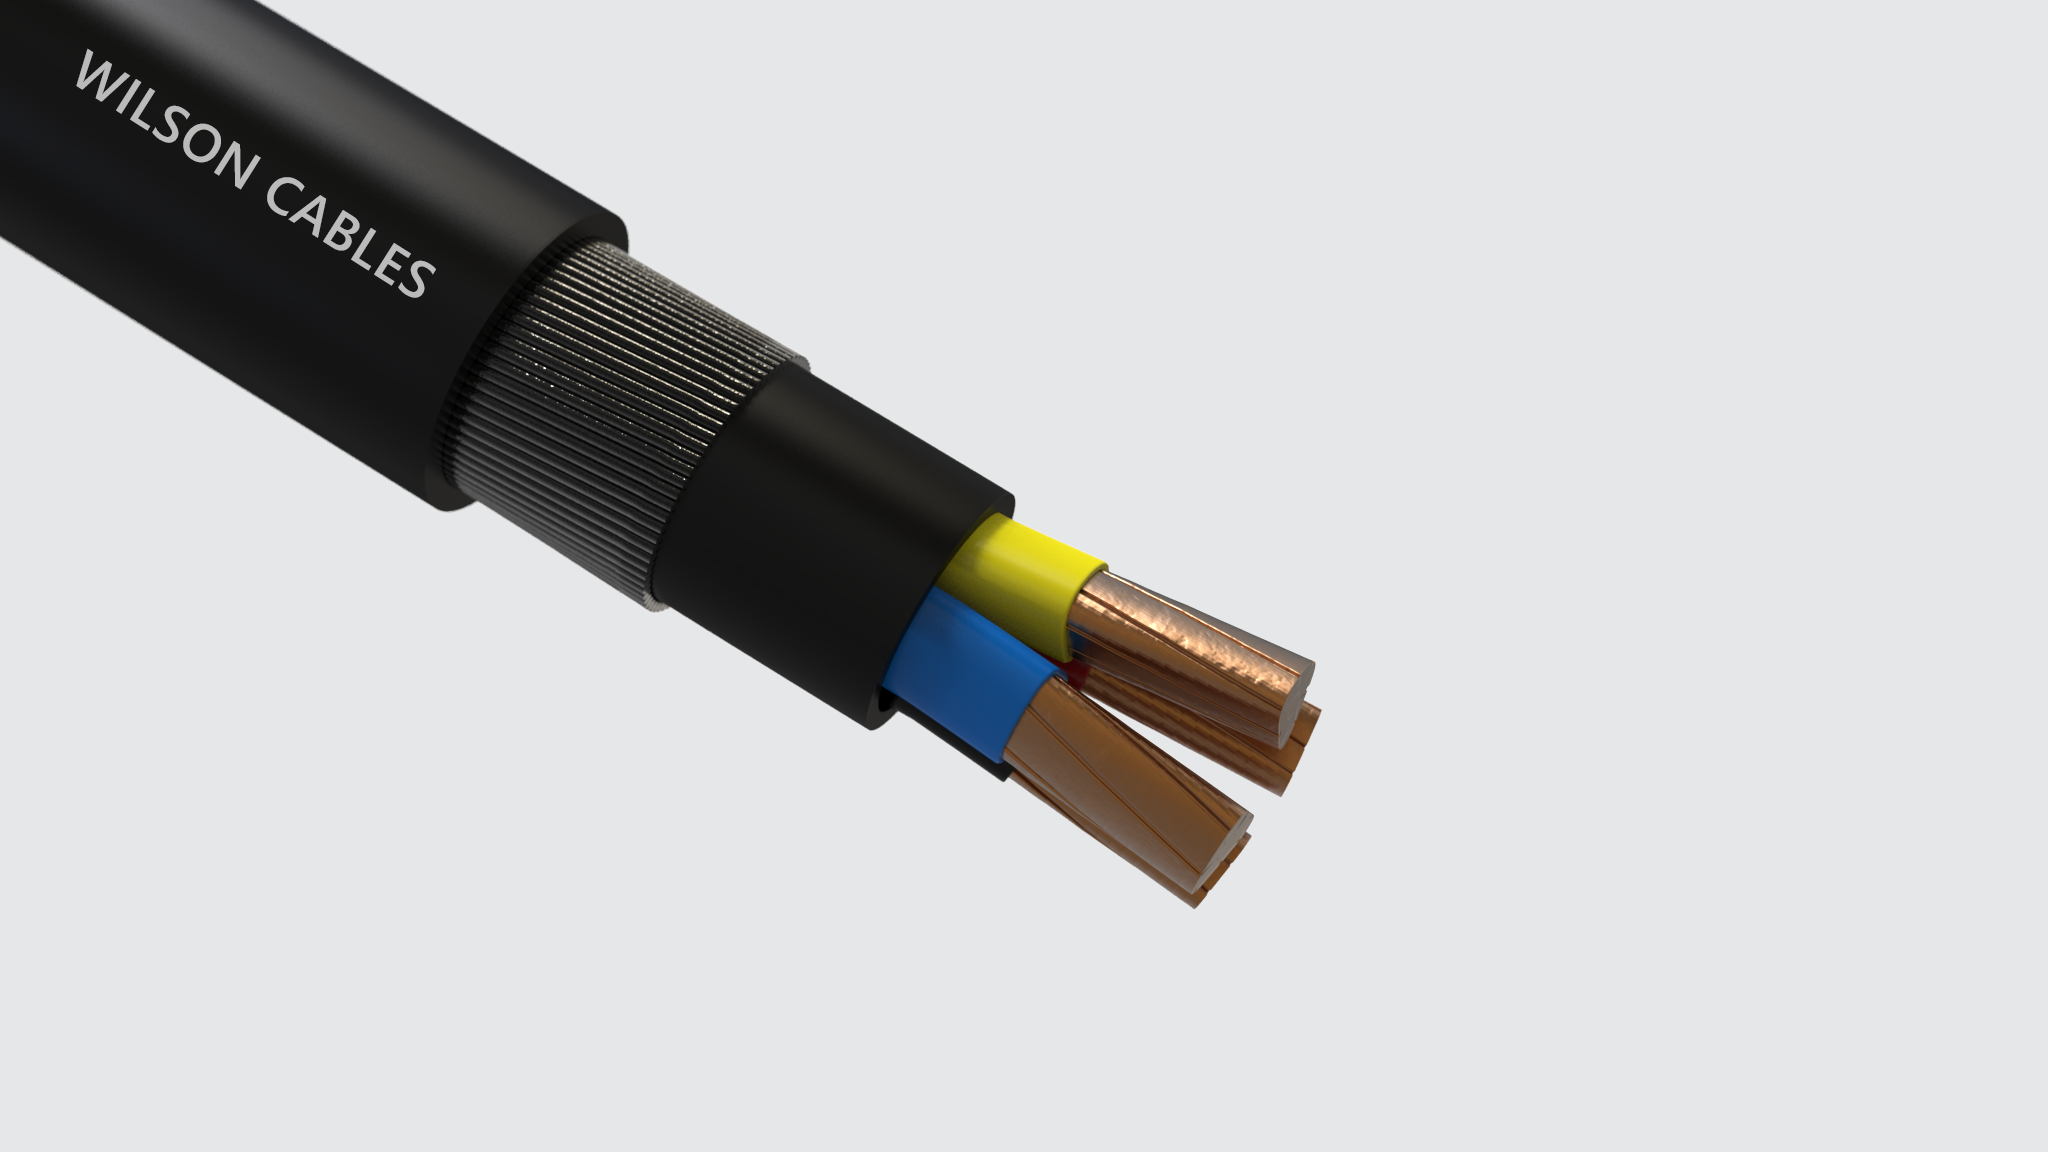 Armored Electrical Cable : Wilson cables xlpe insulated pvc sheathed armoured power